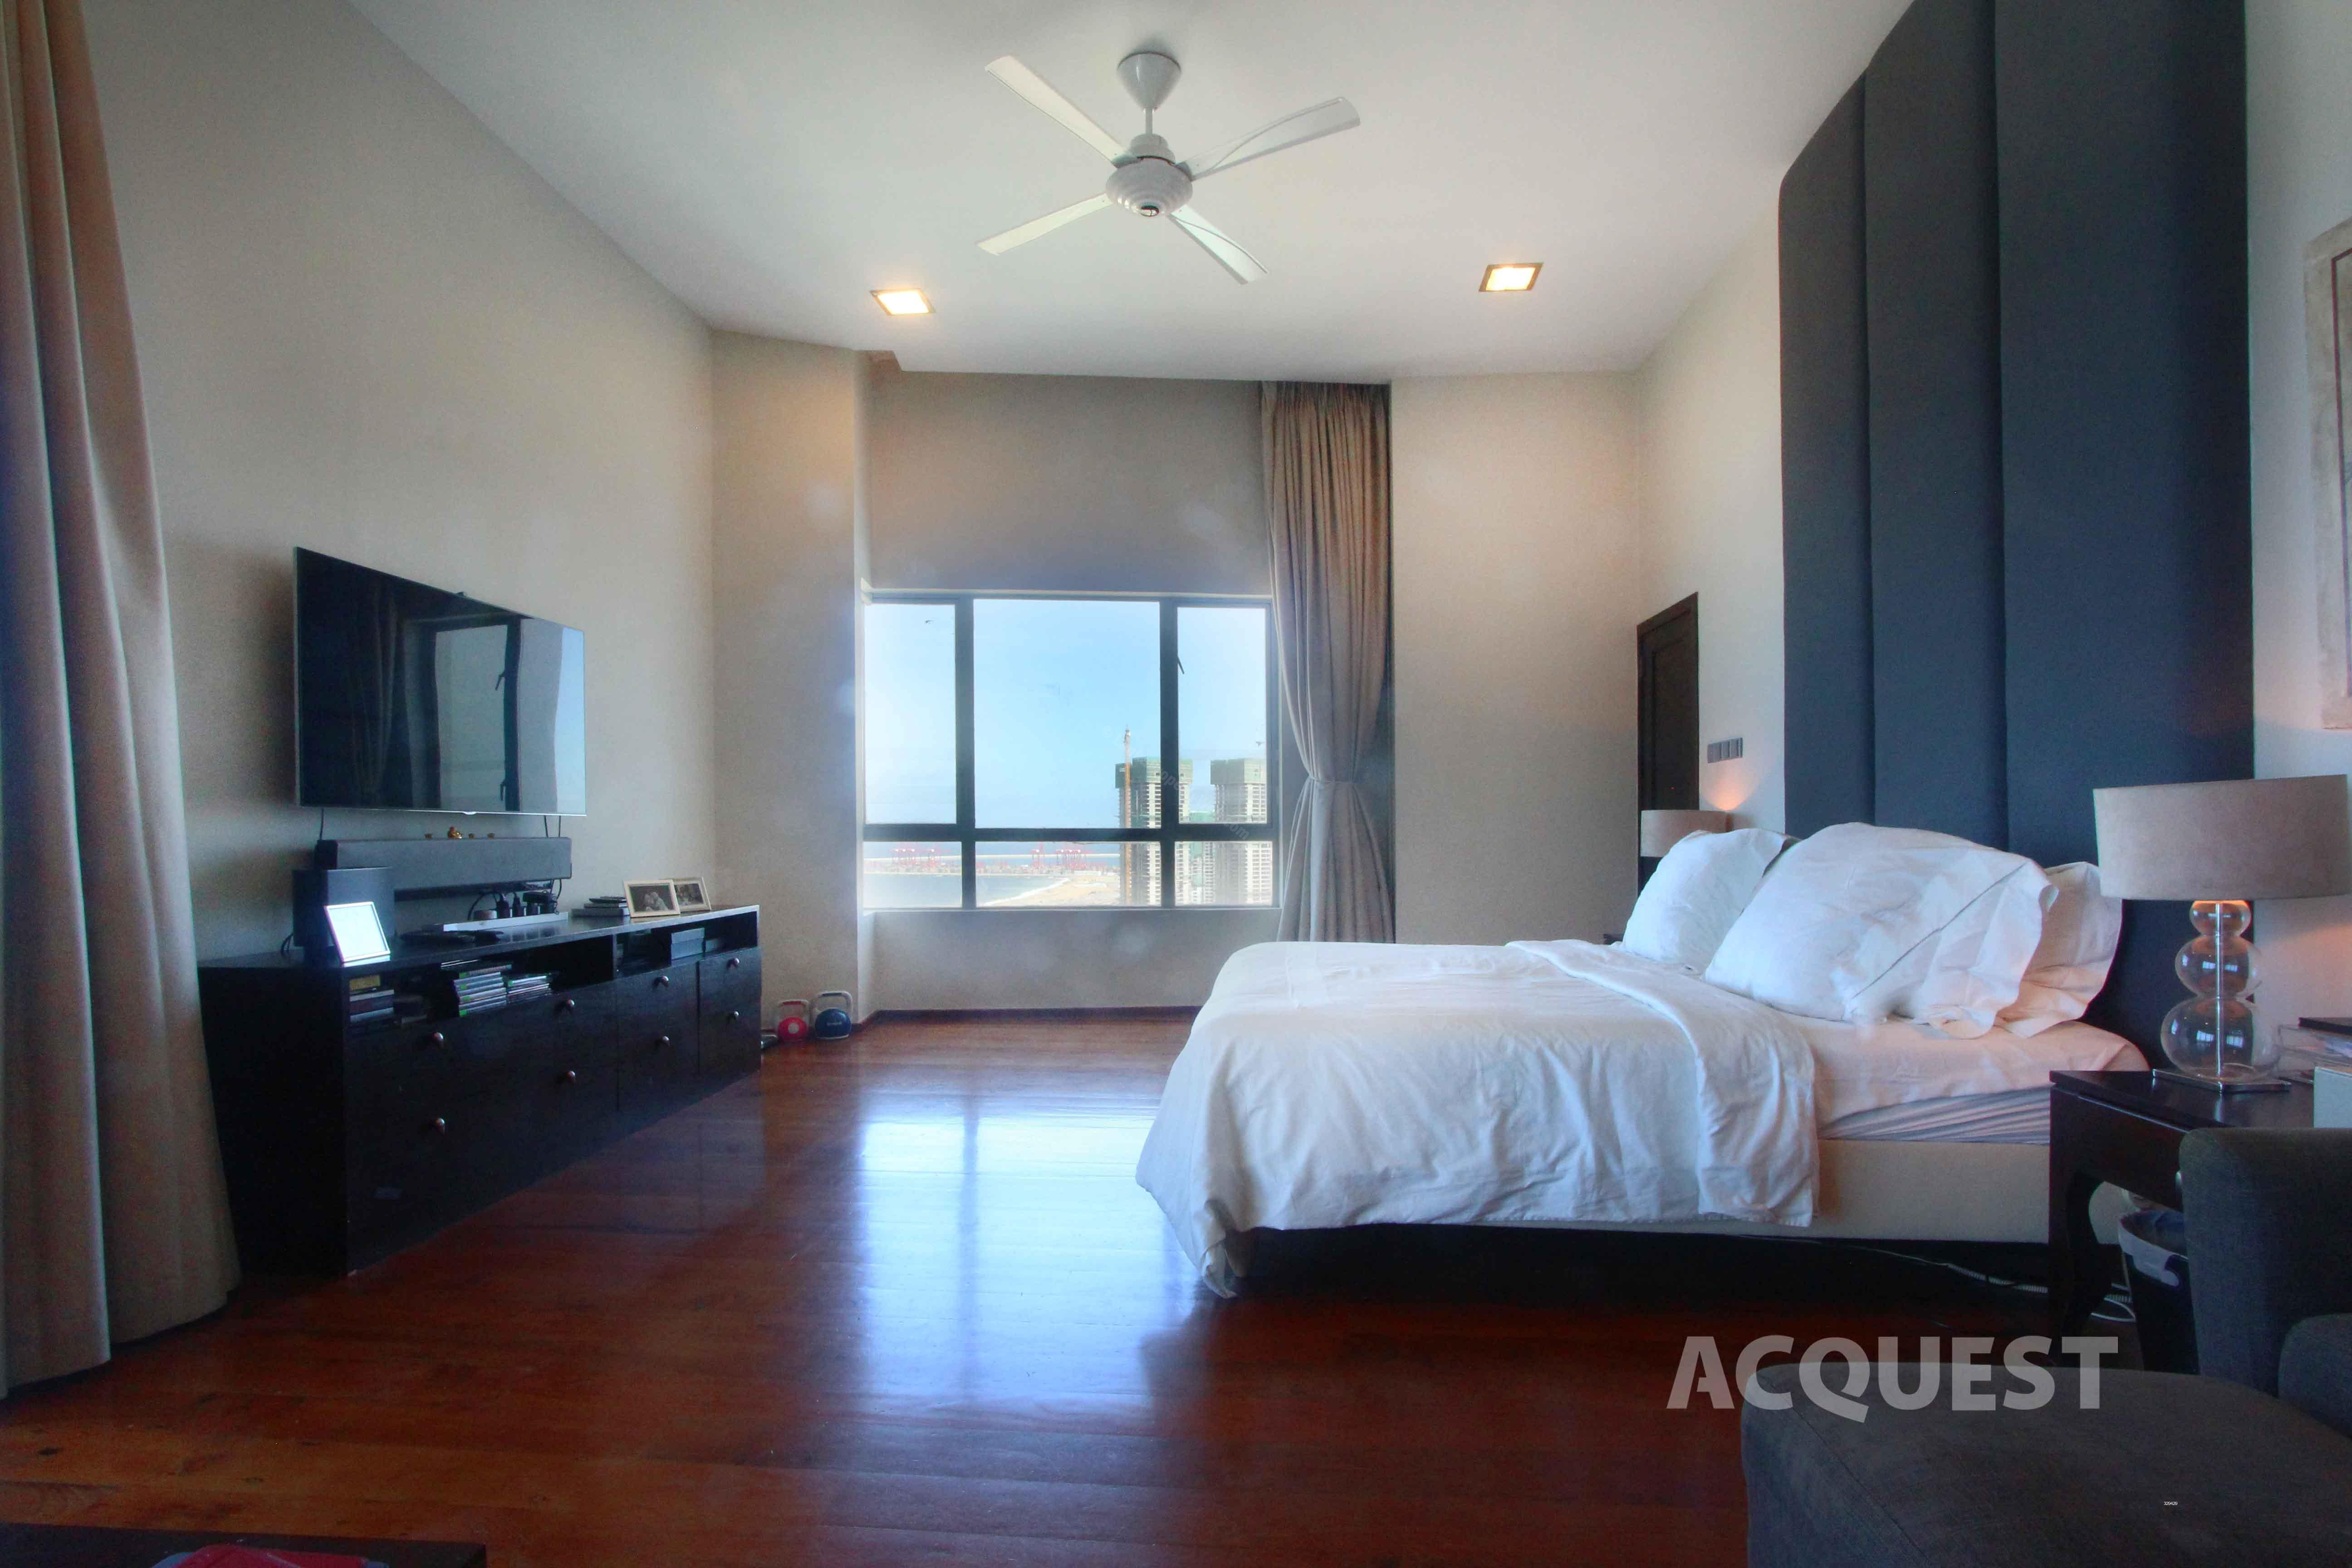 Comm - Shop for sale in Colombo 3 - Apartment for Sale - Iceland Penthouse  - Colombo 03 | LKR 330,000,000